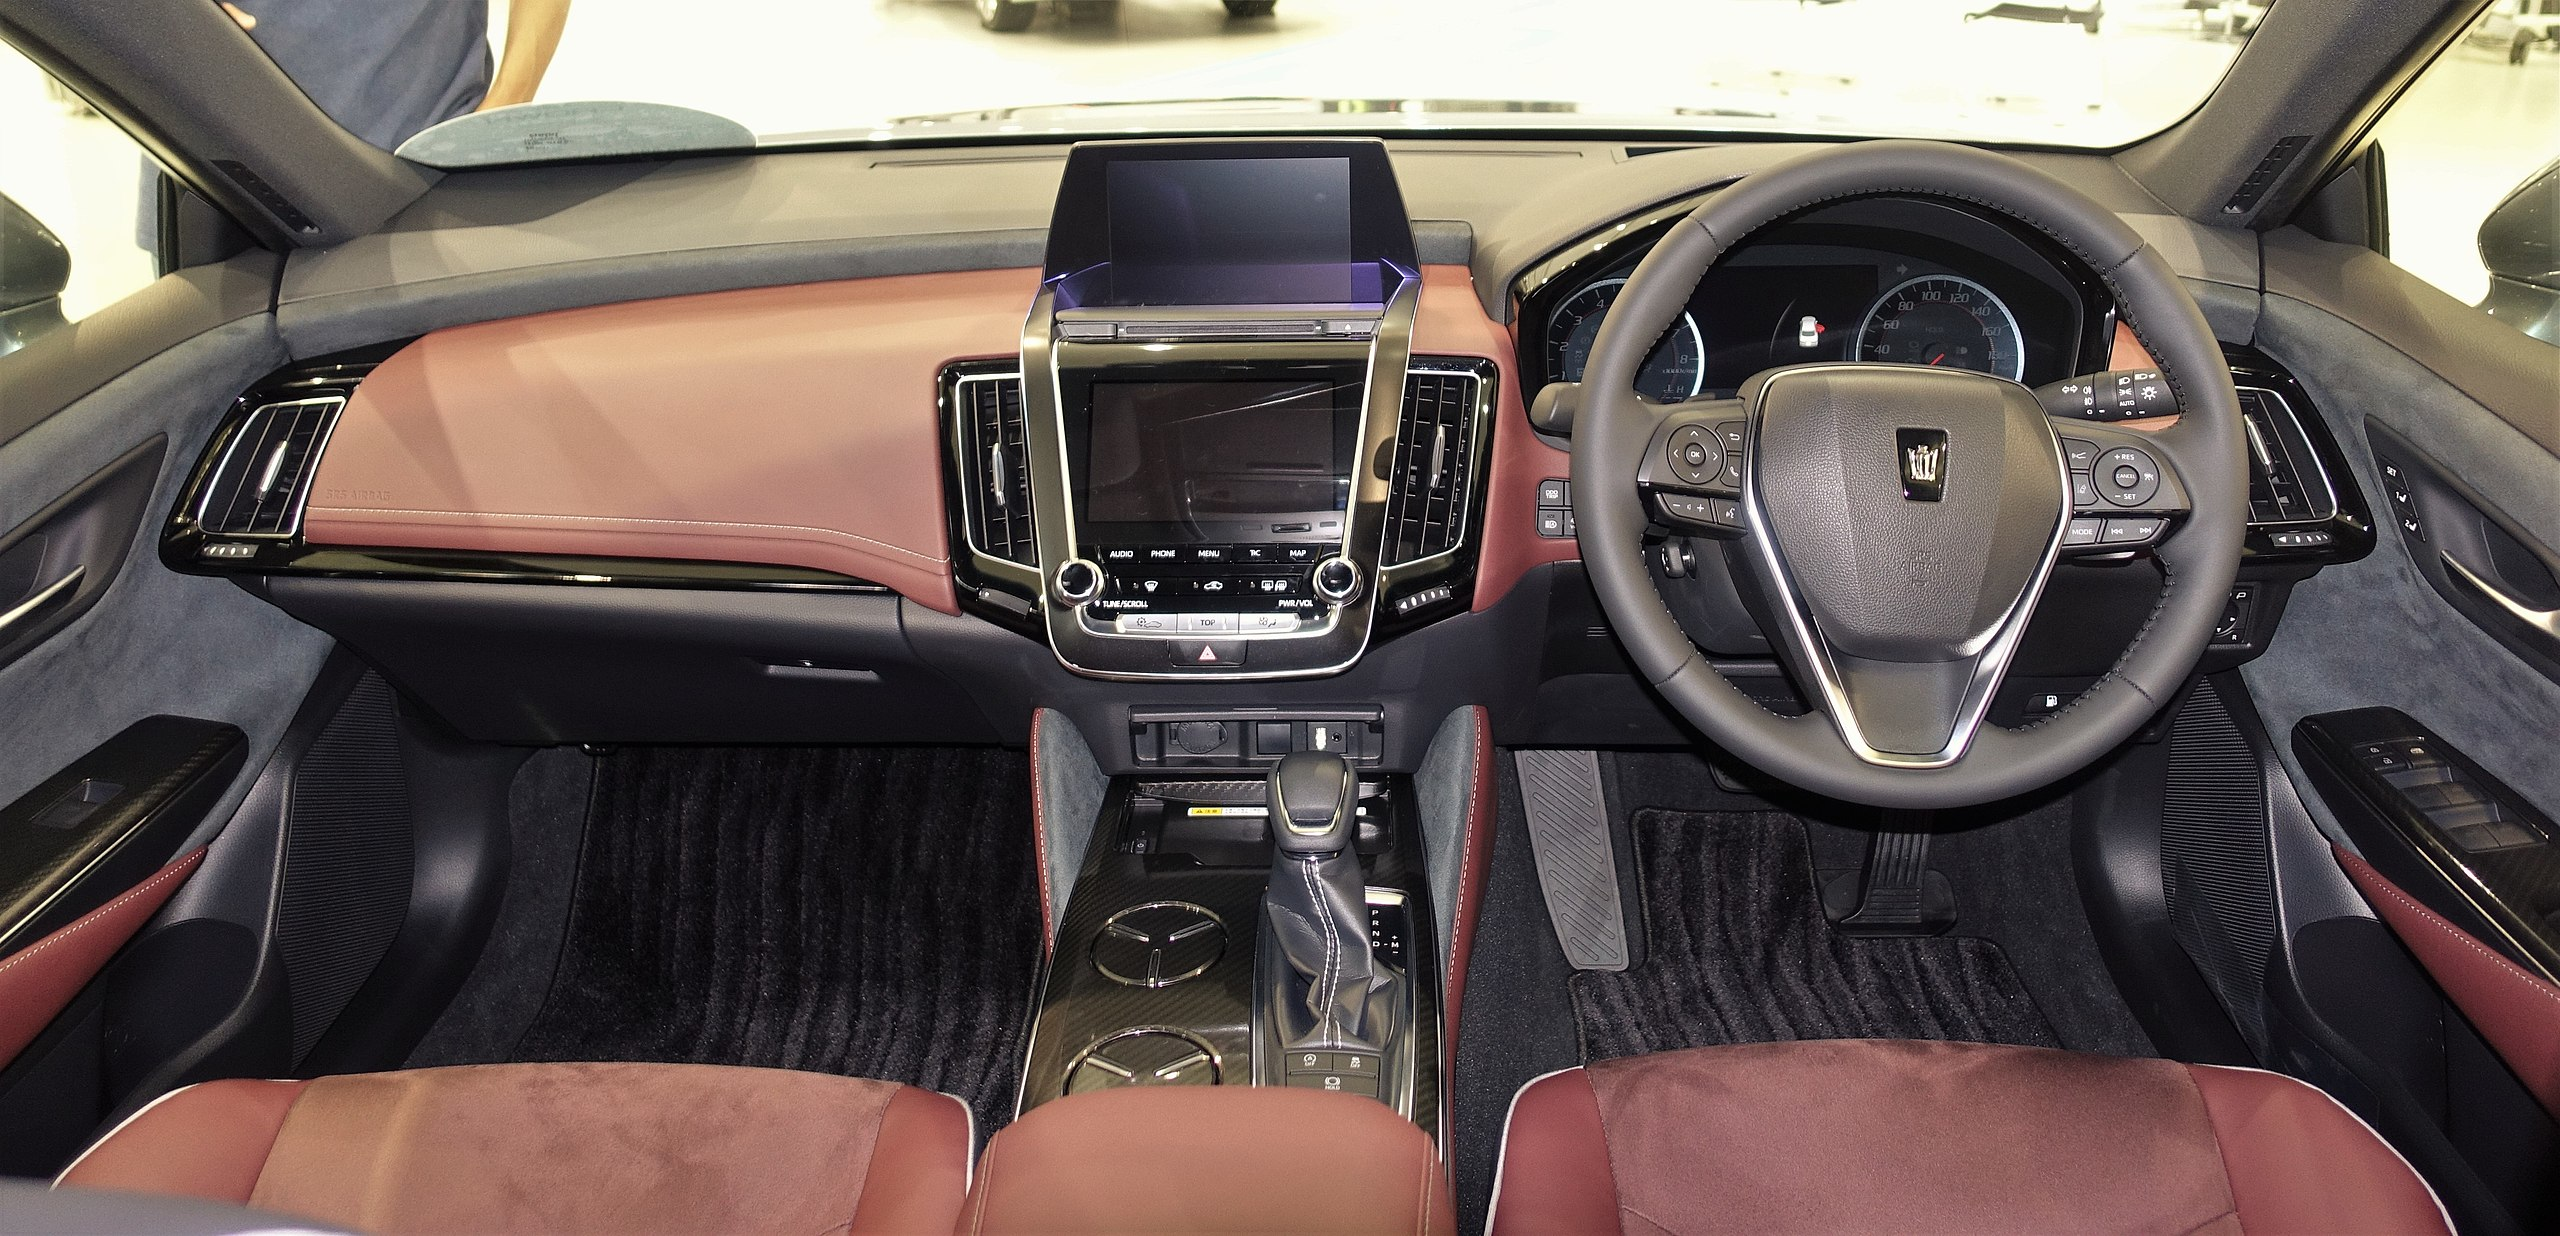 2018 Toyota Crown interior.jpg